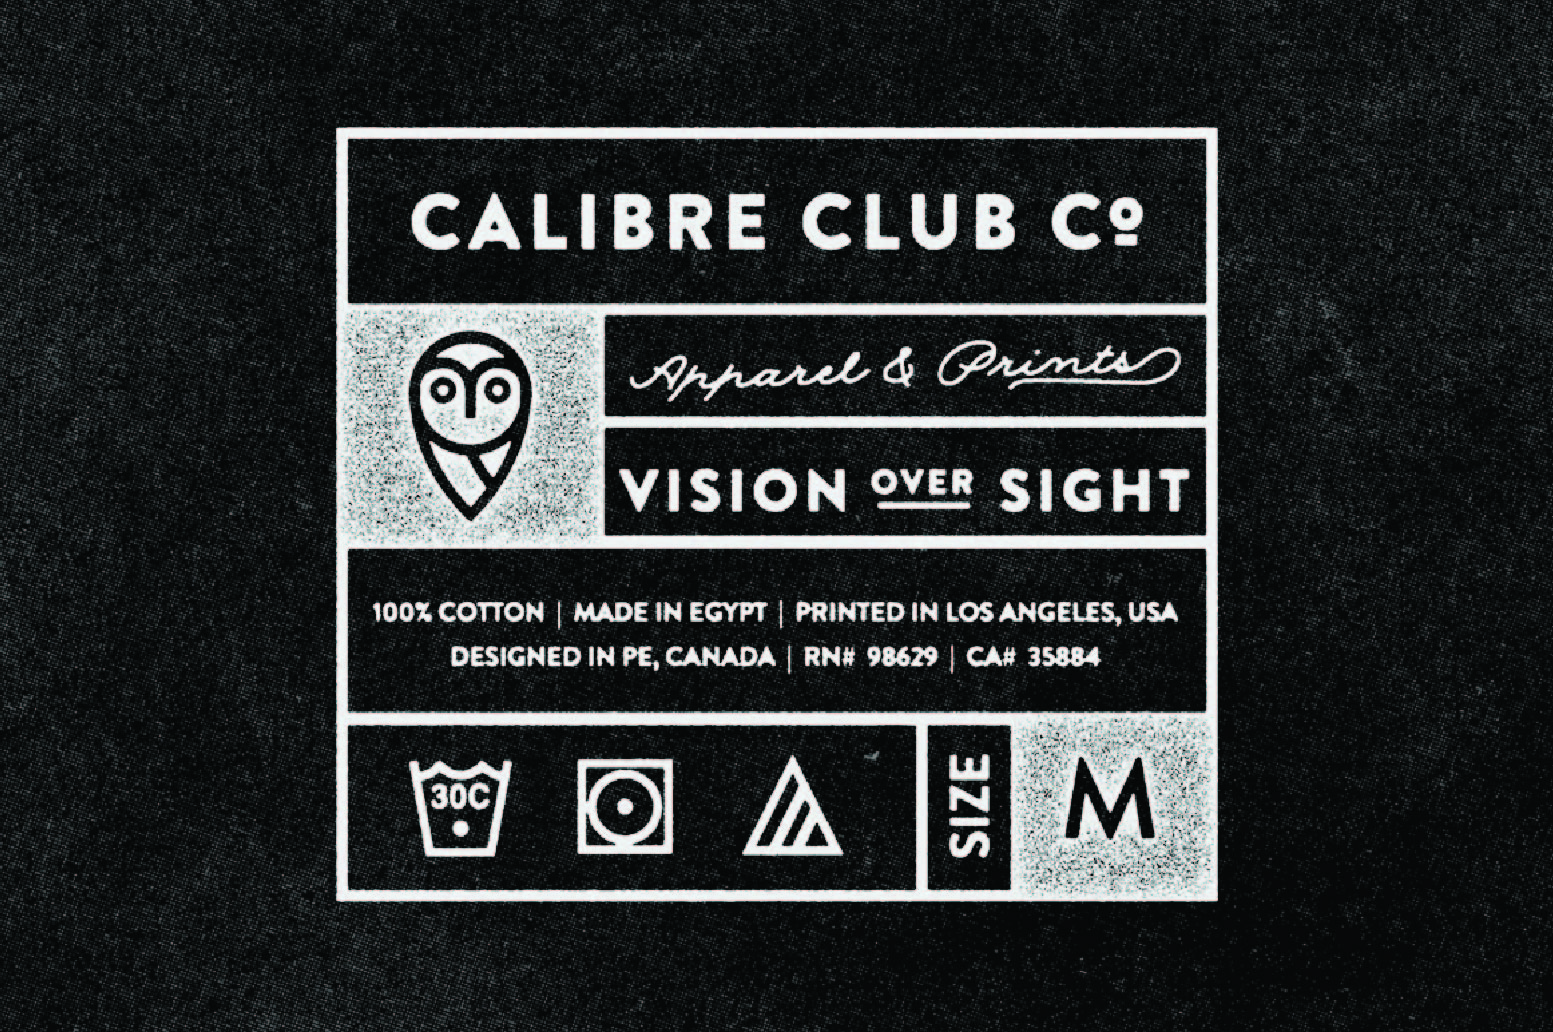 03 internal sizing tag t-shirt calibre club